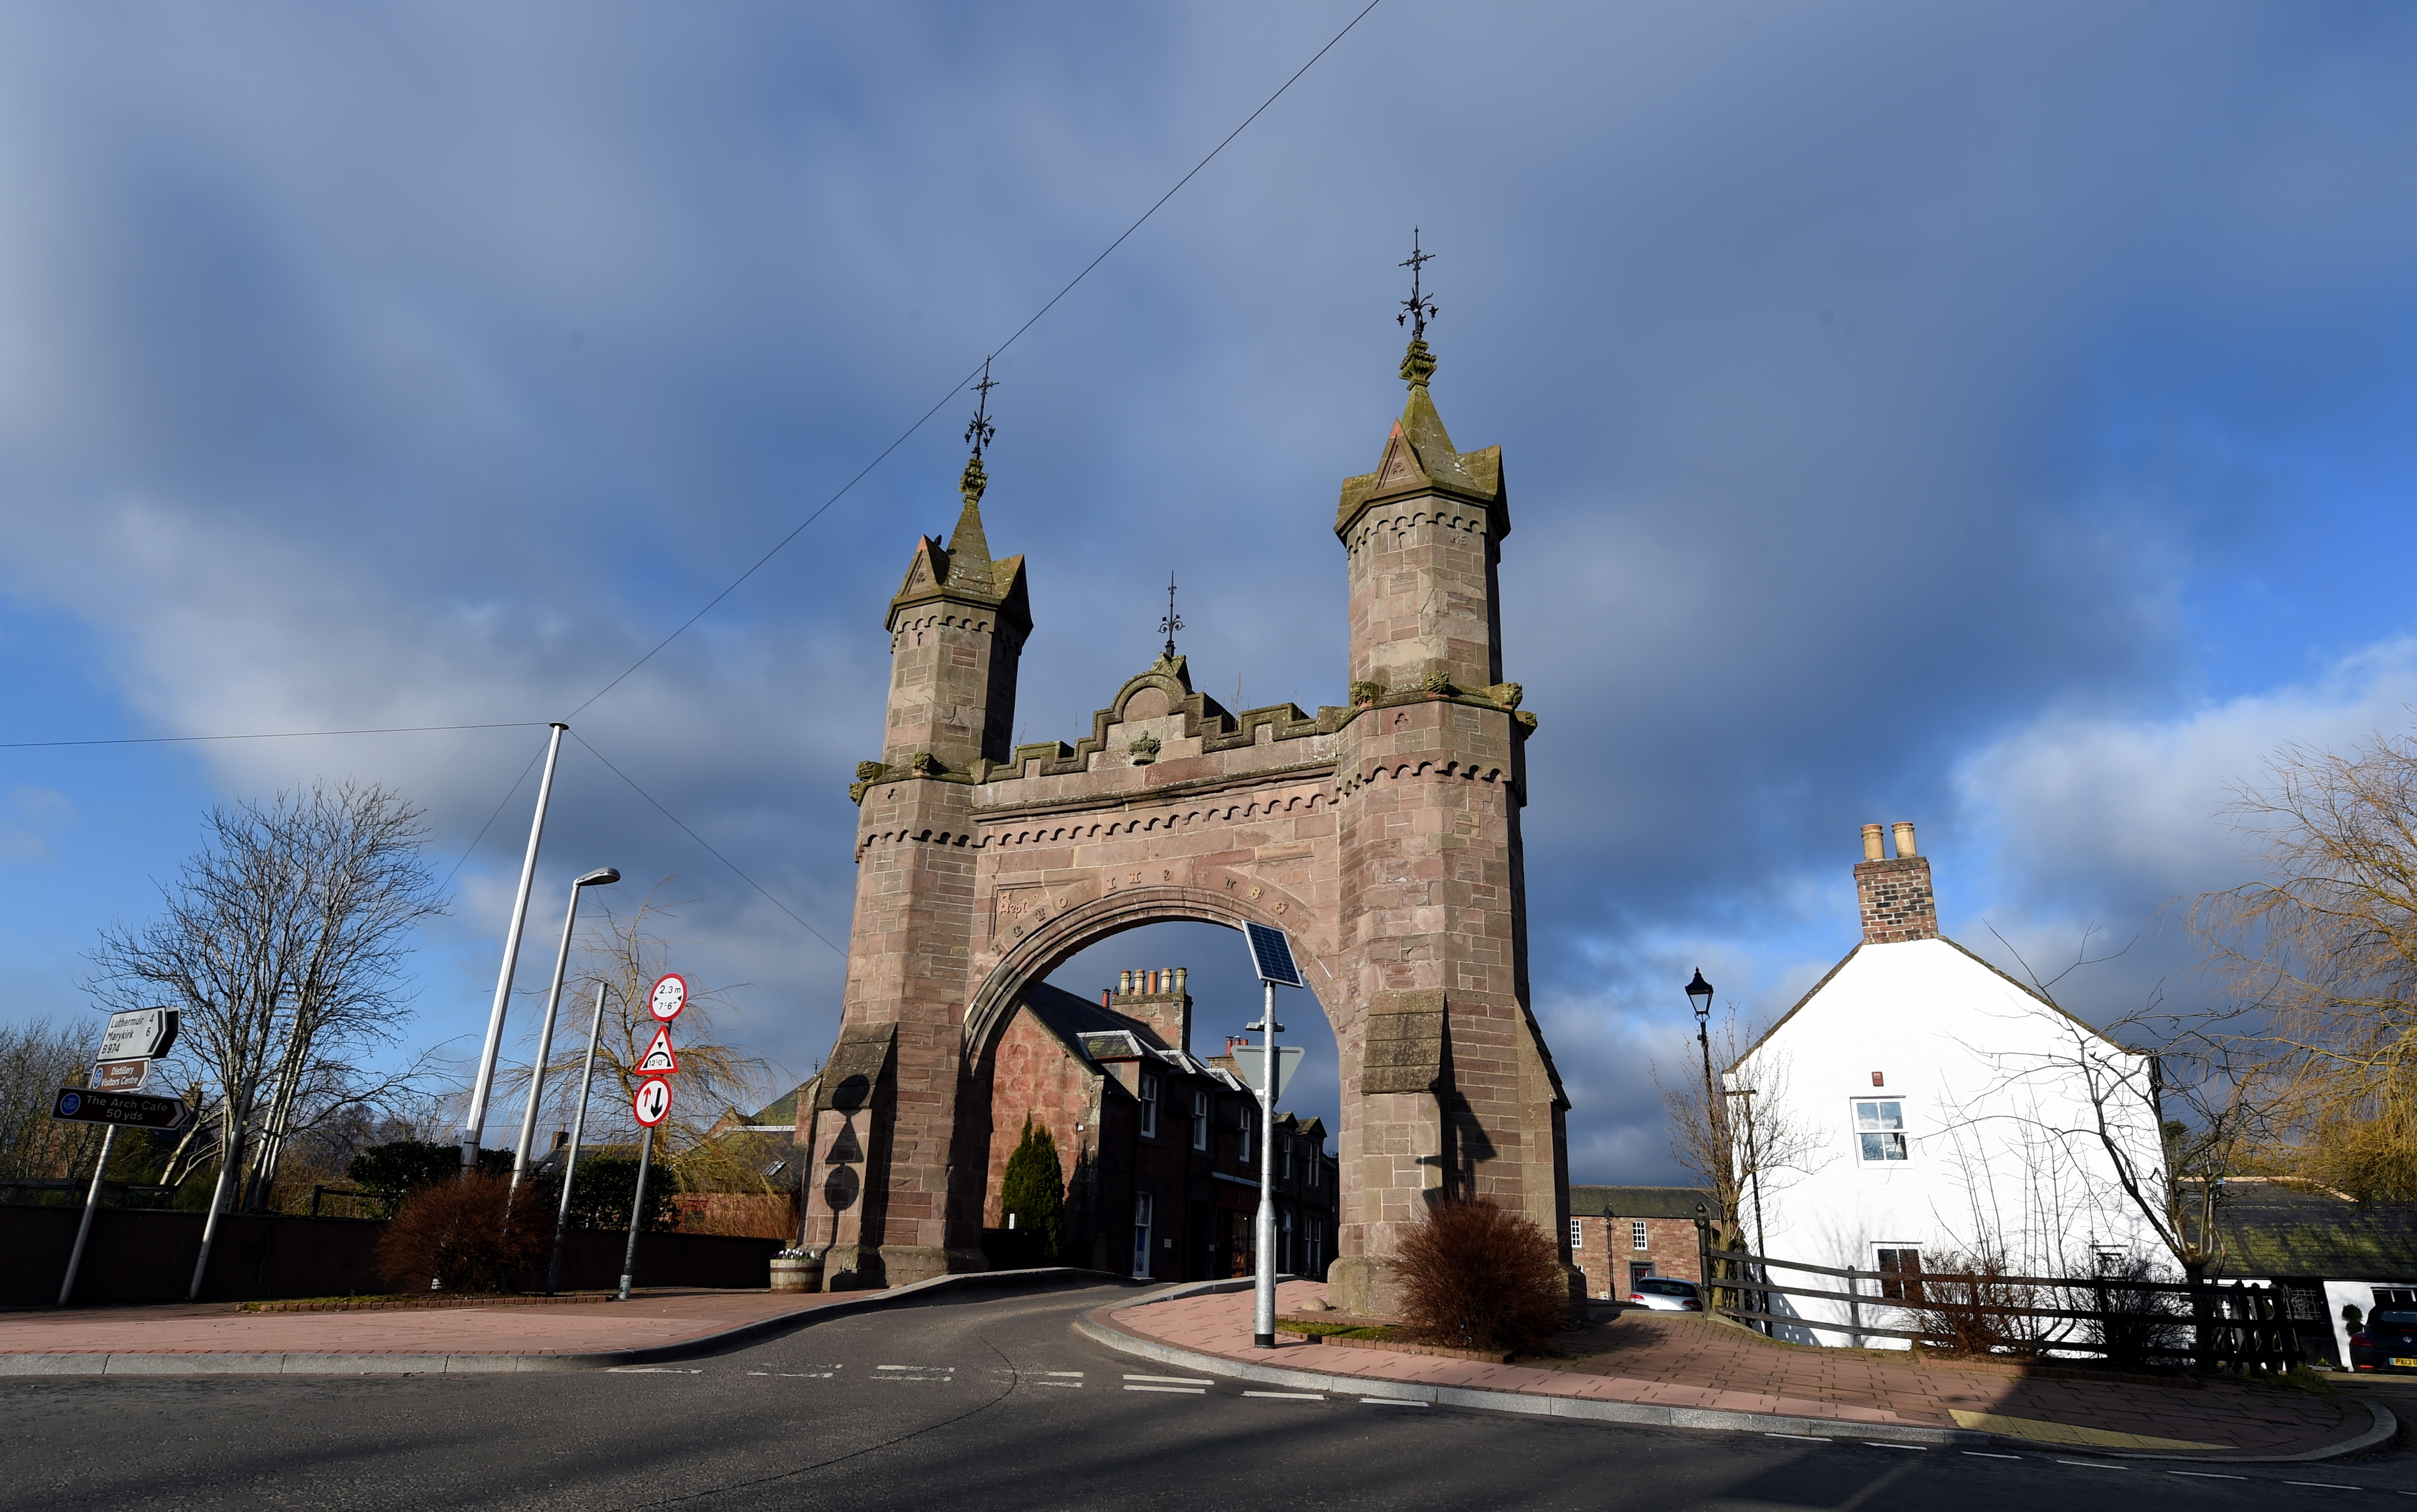 The Royal Arch in Fettercairn was built in 1864 following a royal visit.